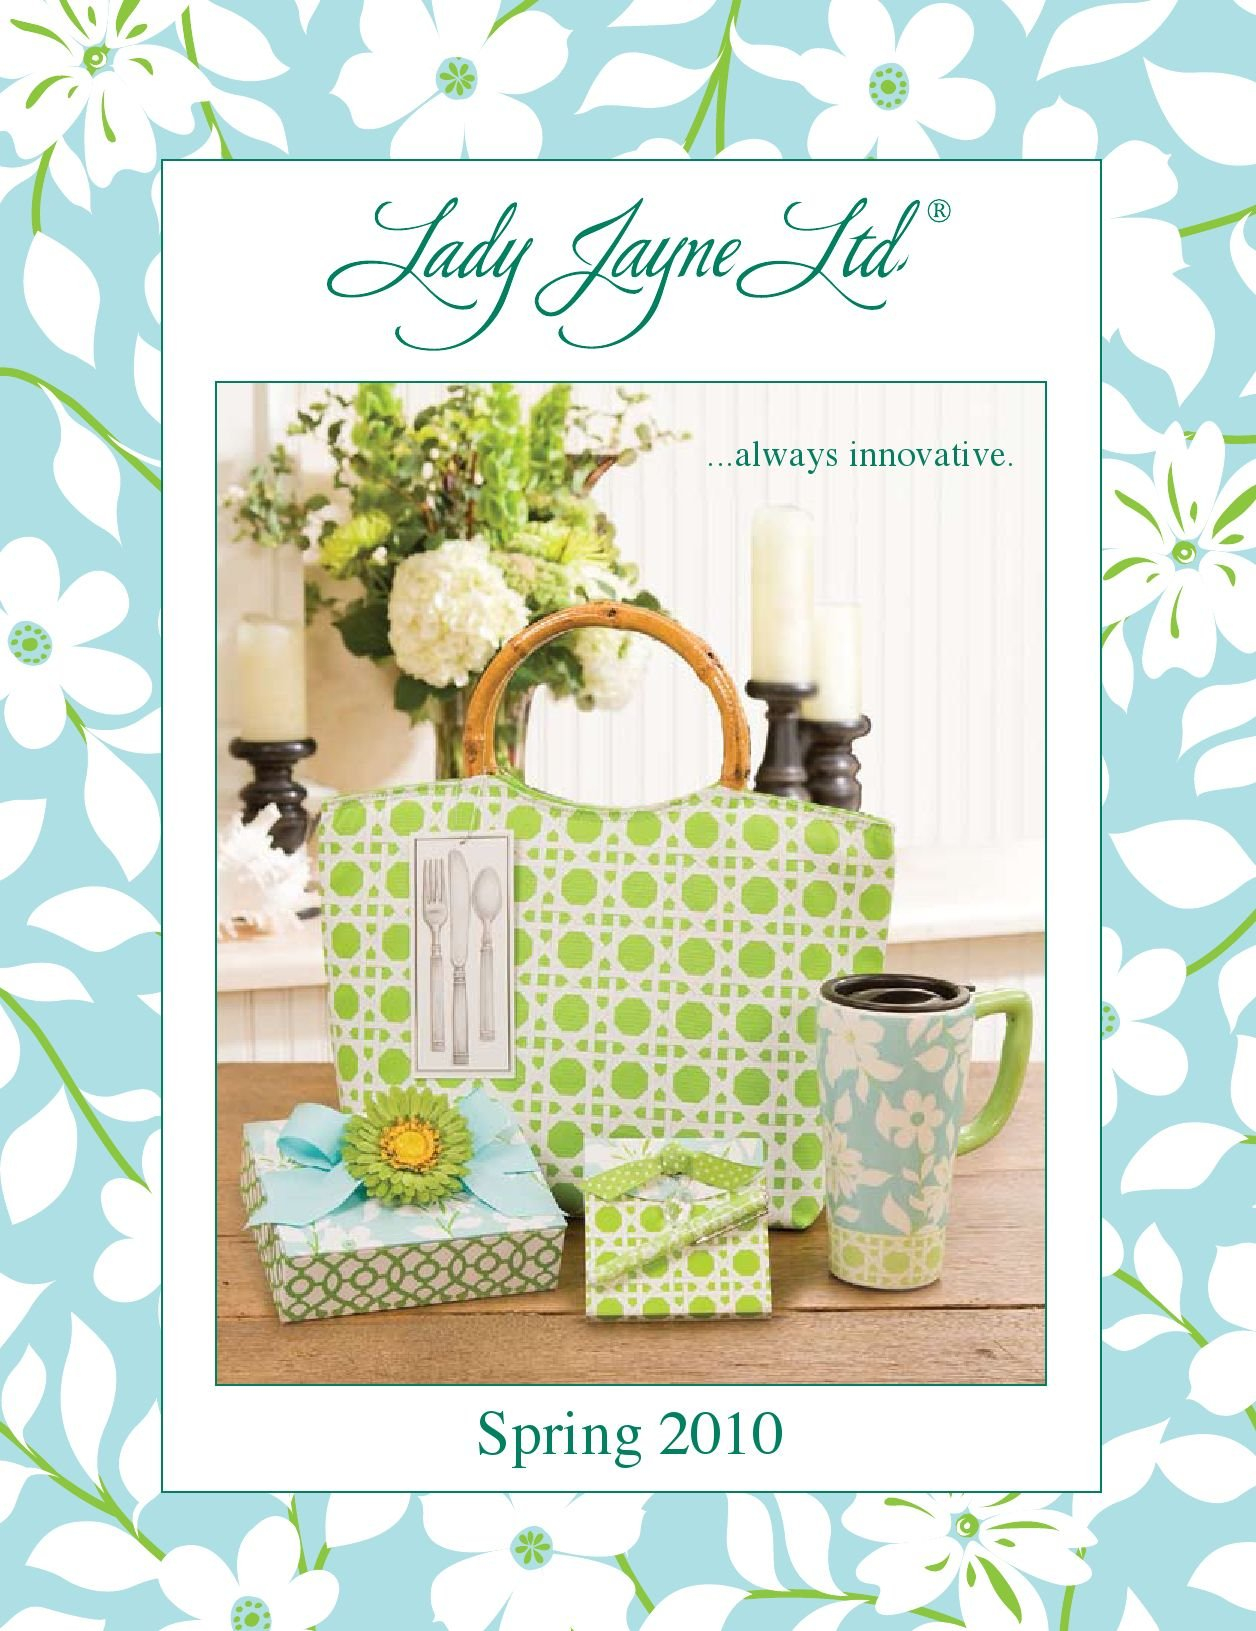 Lady Jane Spring2010Fairfull – Issuu 81/2 X 11 Calenar Pages